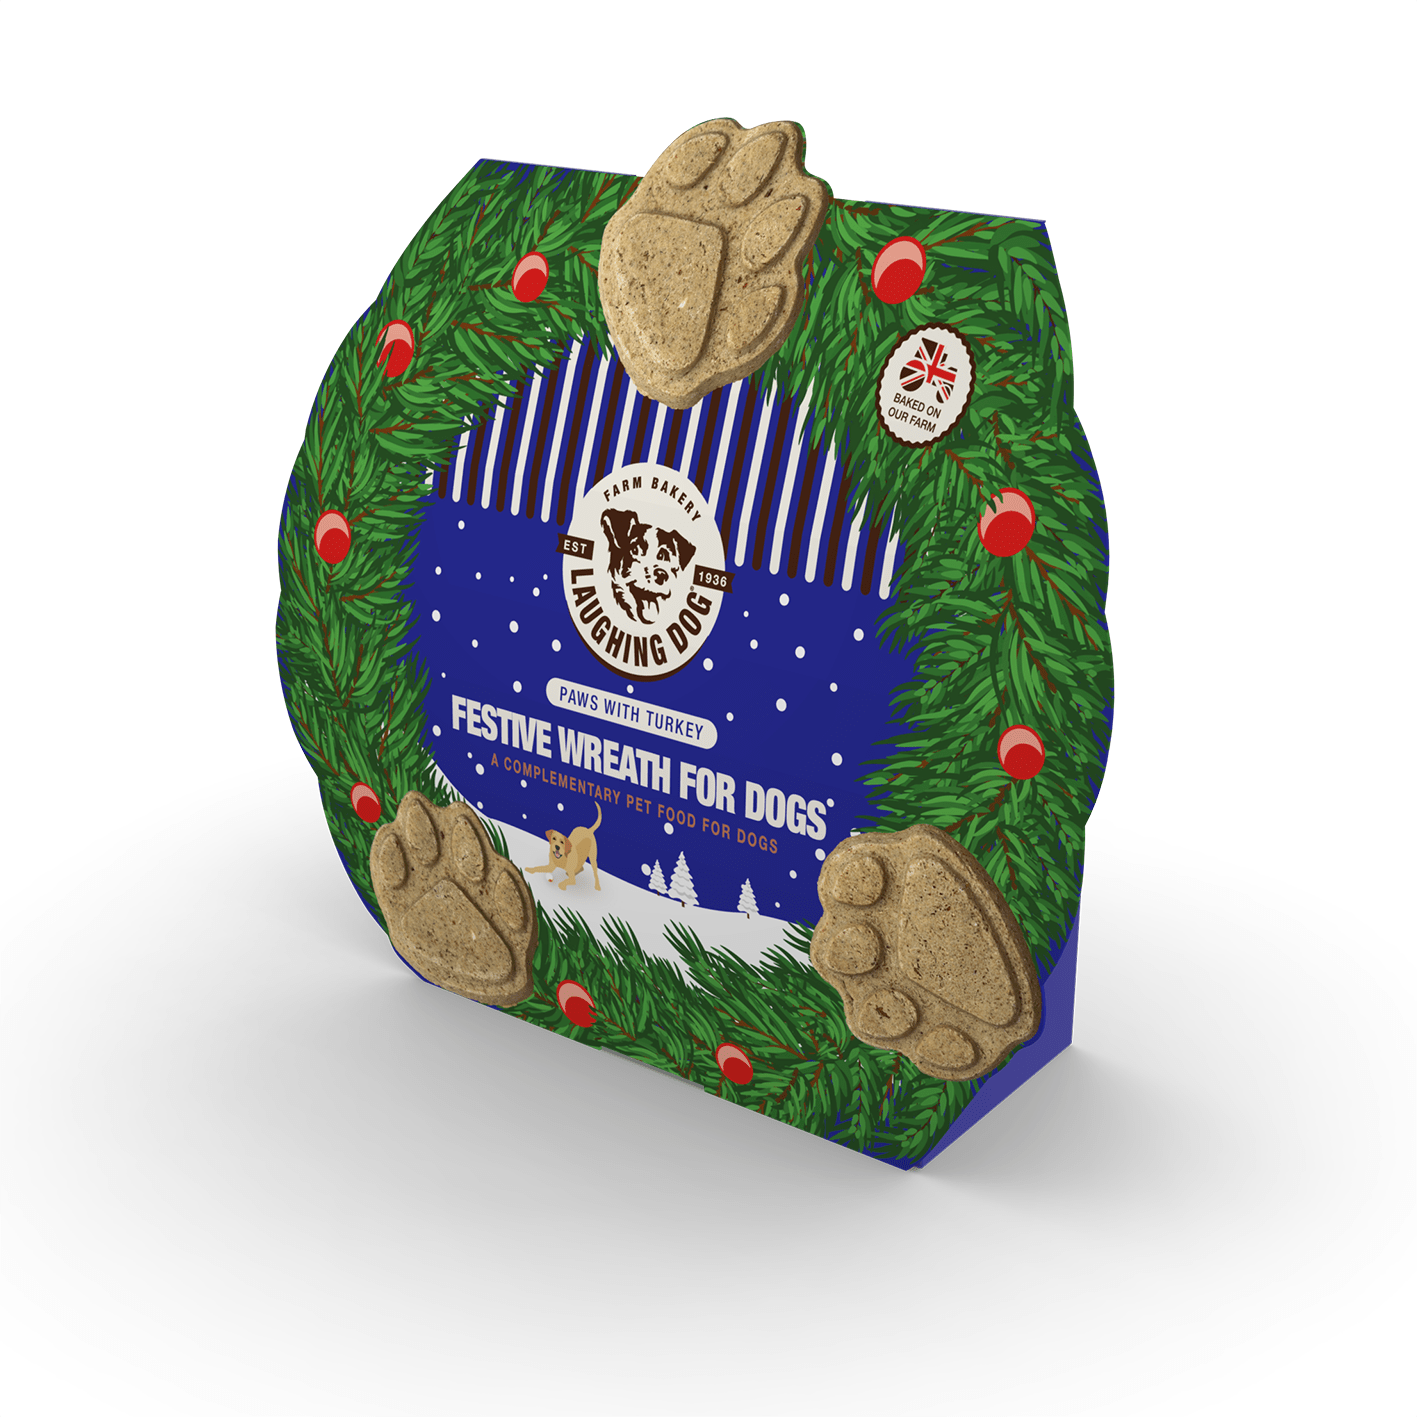 Festive Wreath for Dogs - Paws with Turkey Image   Laughing Dog Food